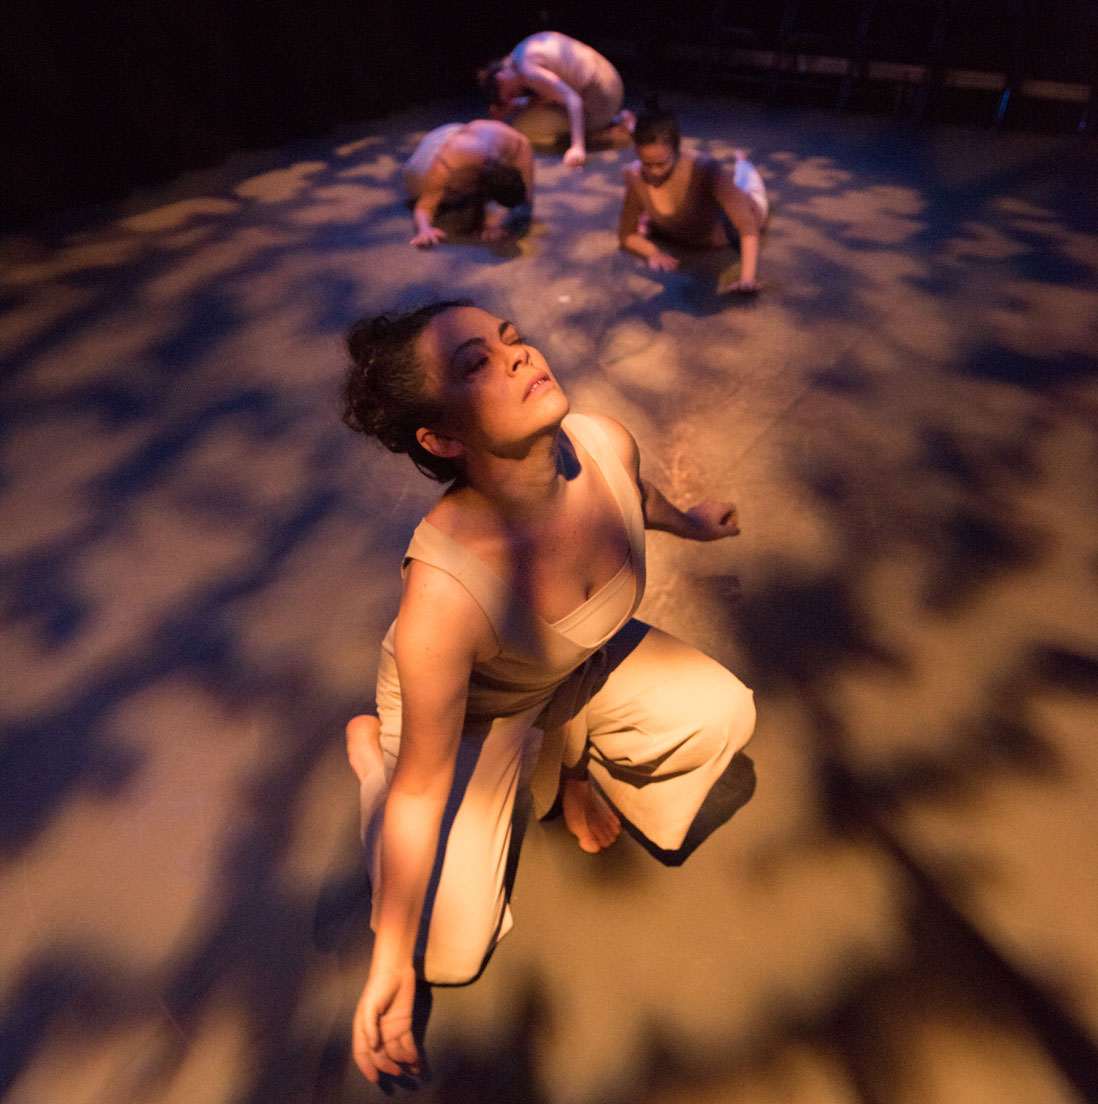 dance artists from Raven Spirit Dance Society perform in Gathering Light